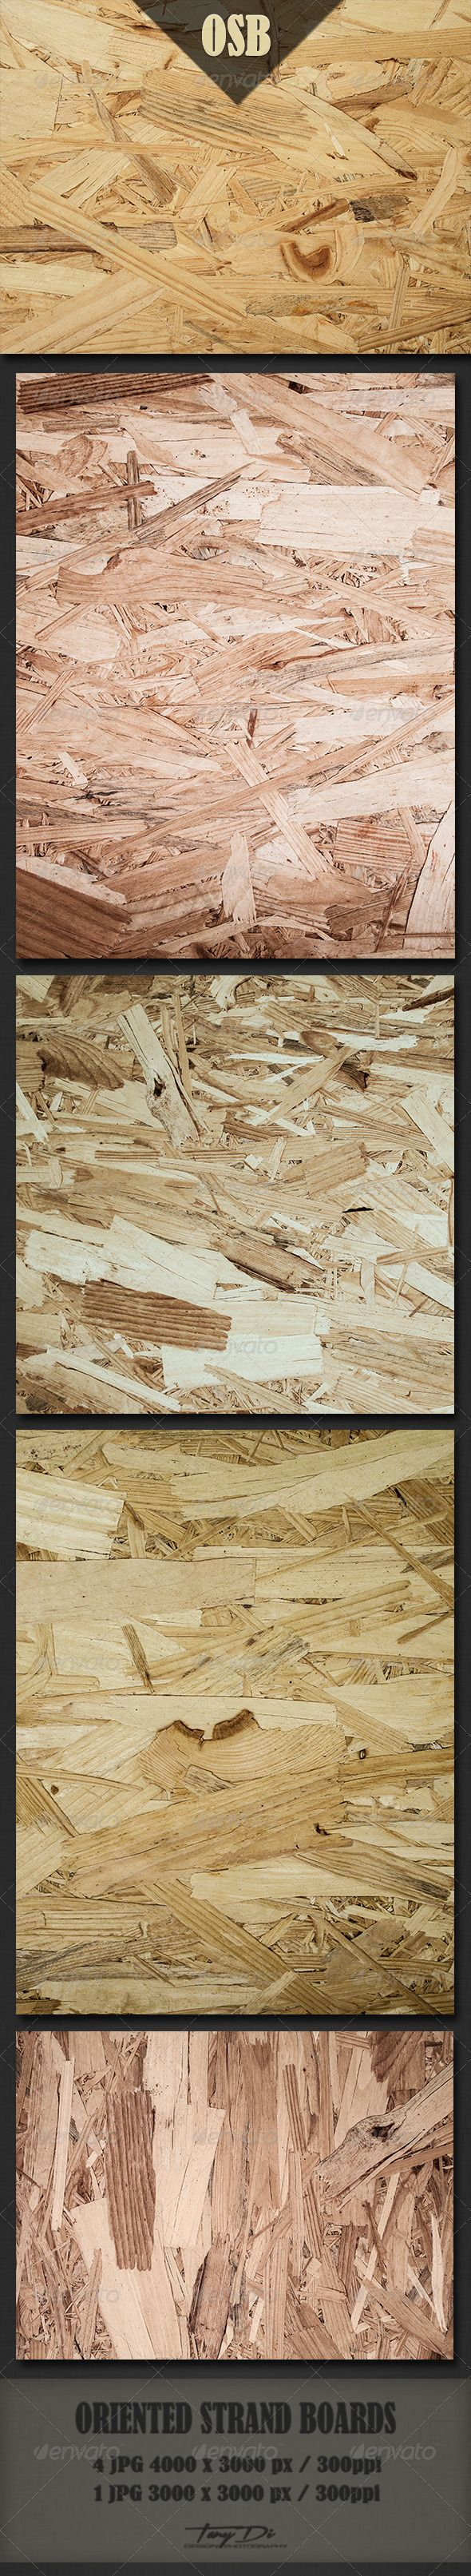 25 Best Ideas About Strand Board On Pinterest Oriented Strand Board Osb Board And Osb Plywood